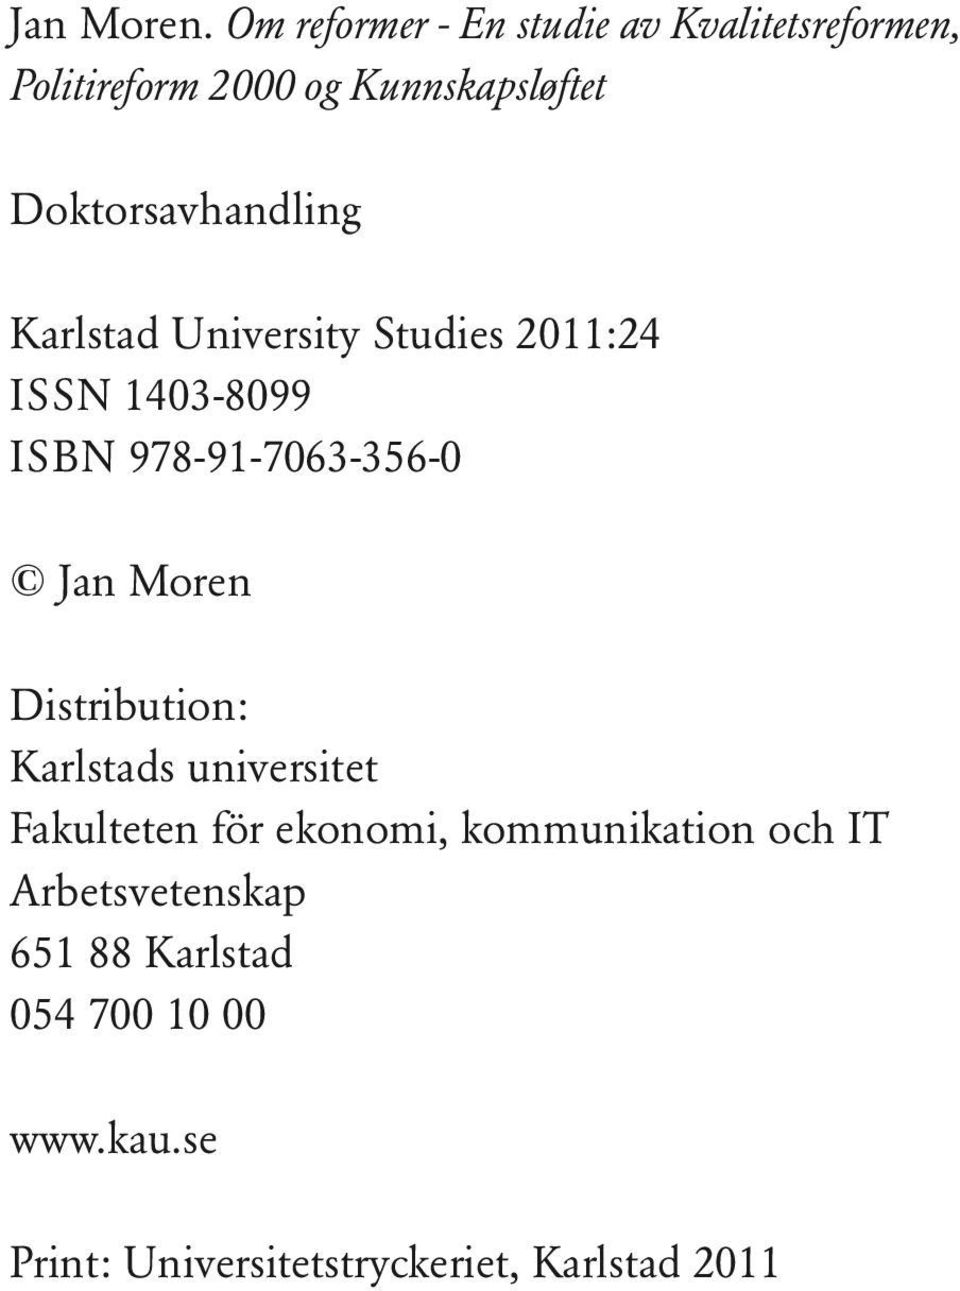 Doktorsavhandling Karlstad University Studies 2011:24 ISSN 1403-8099 ISBN 978-91-7063-356-0